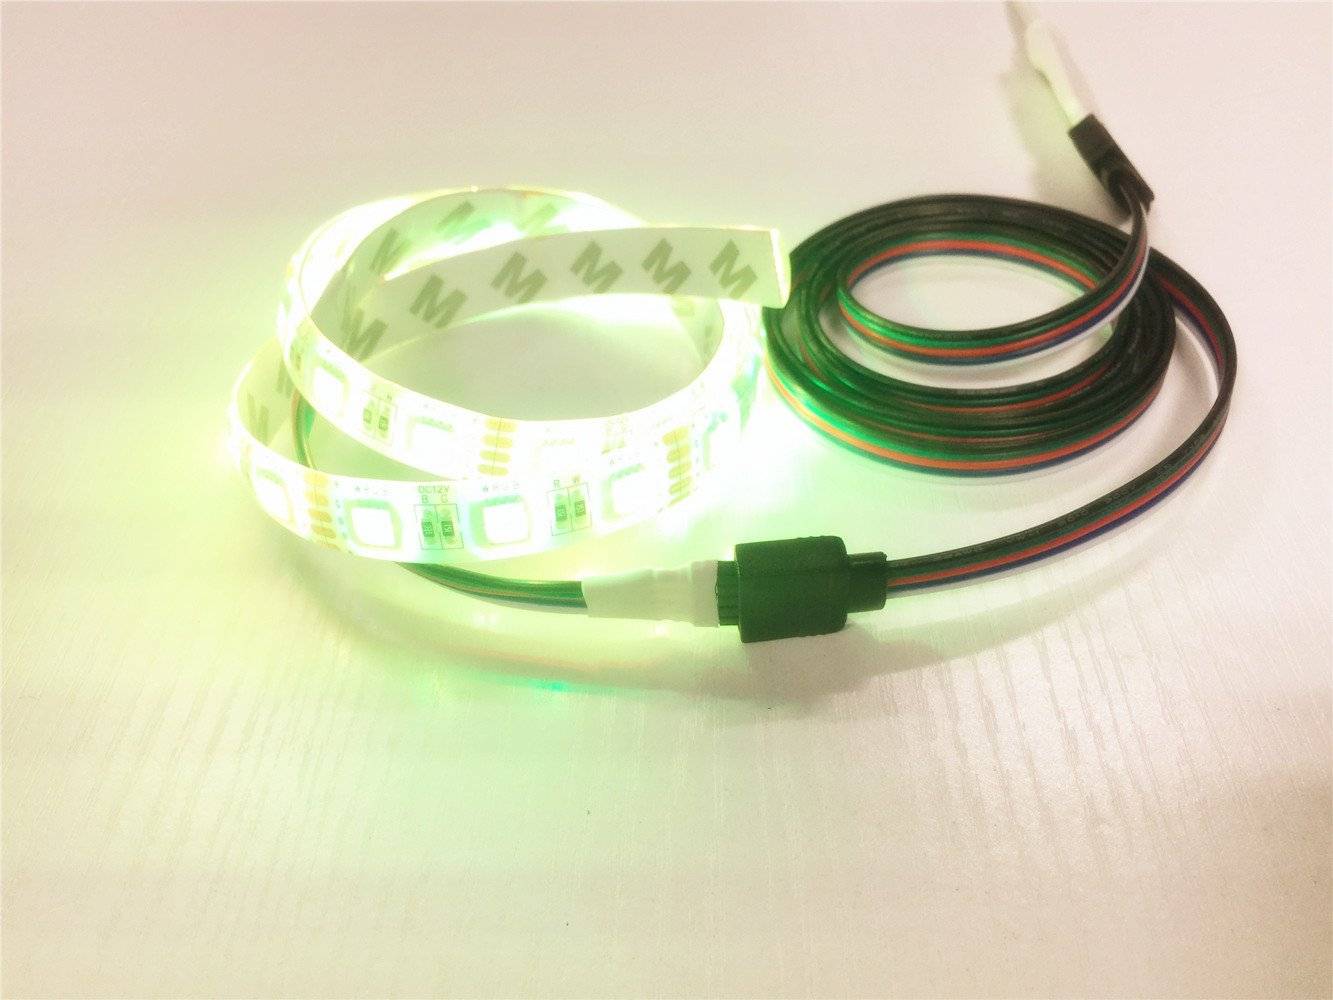 10m Cable Extensión Tira LED 5 pines Cable de Conexión Cinta de luz LED 5 Pin Línea Conector Banda LED Extension Cable Connector para SMD 5050 RGBW LED ...